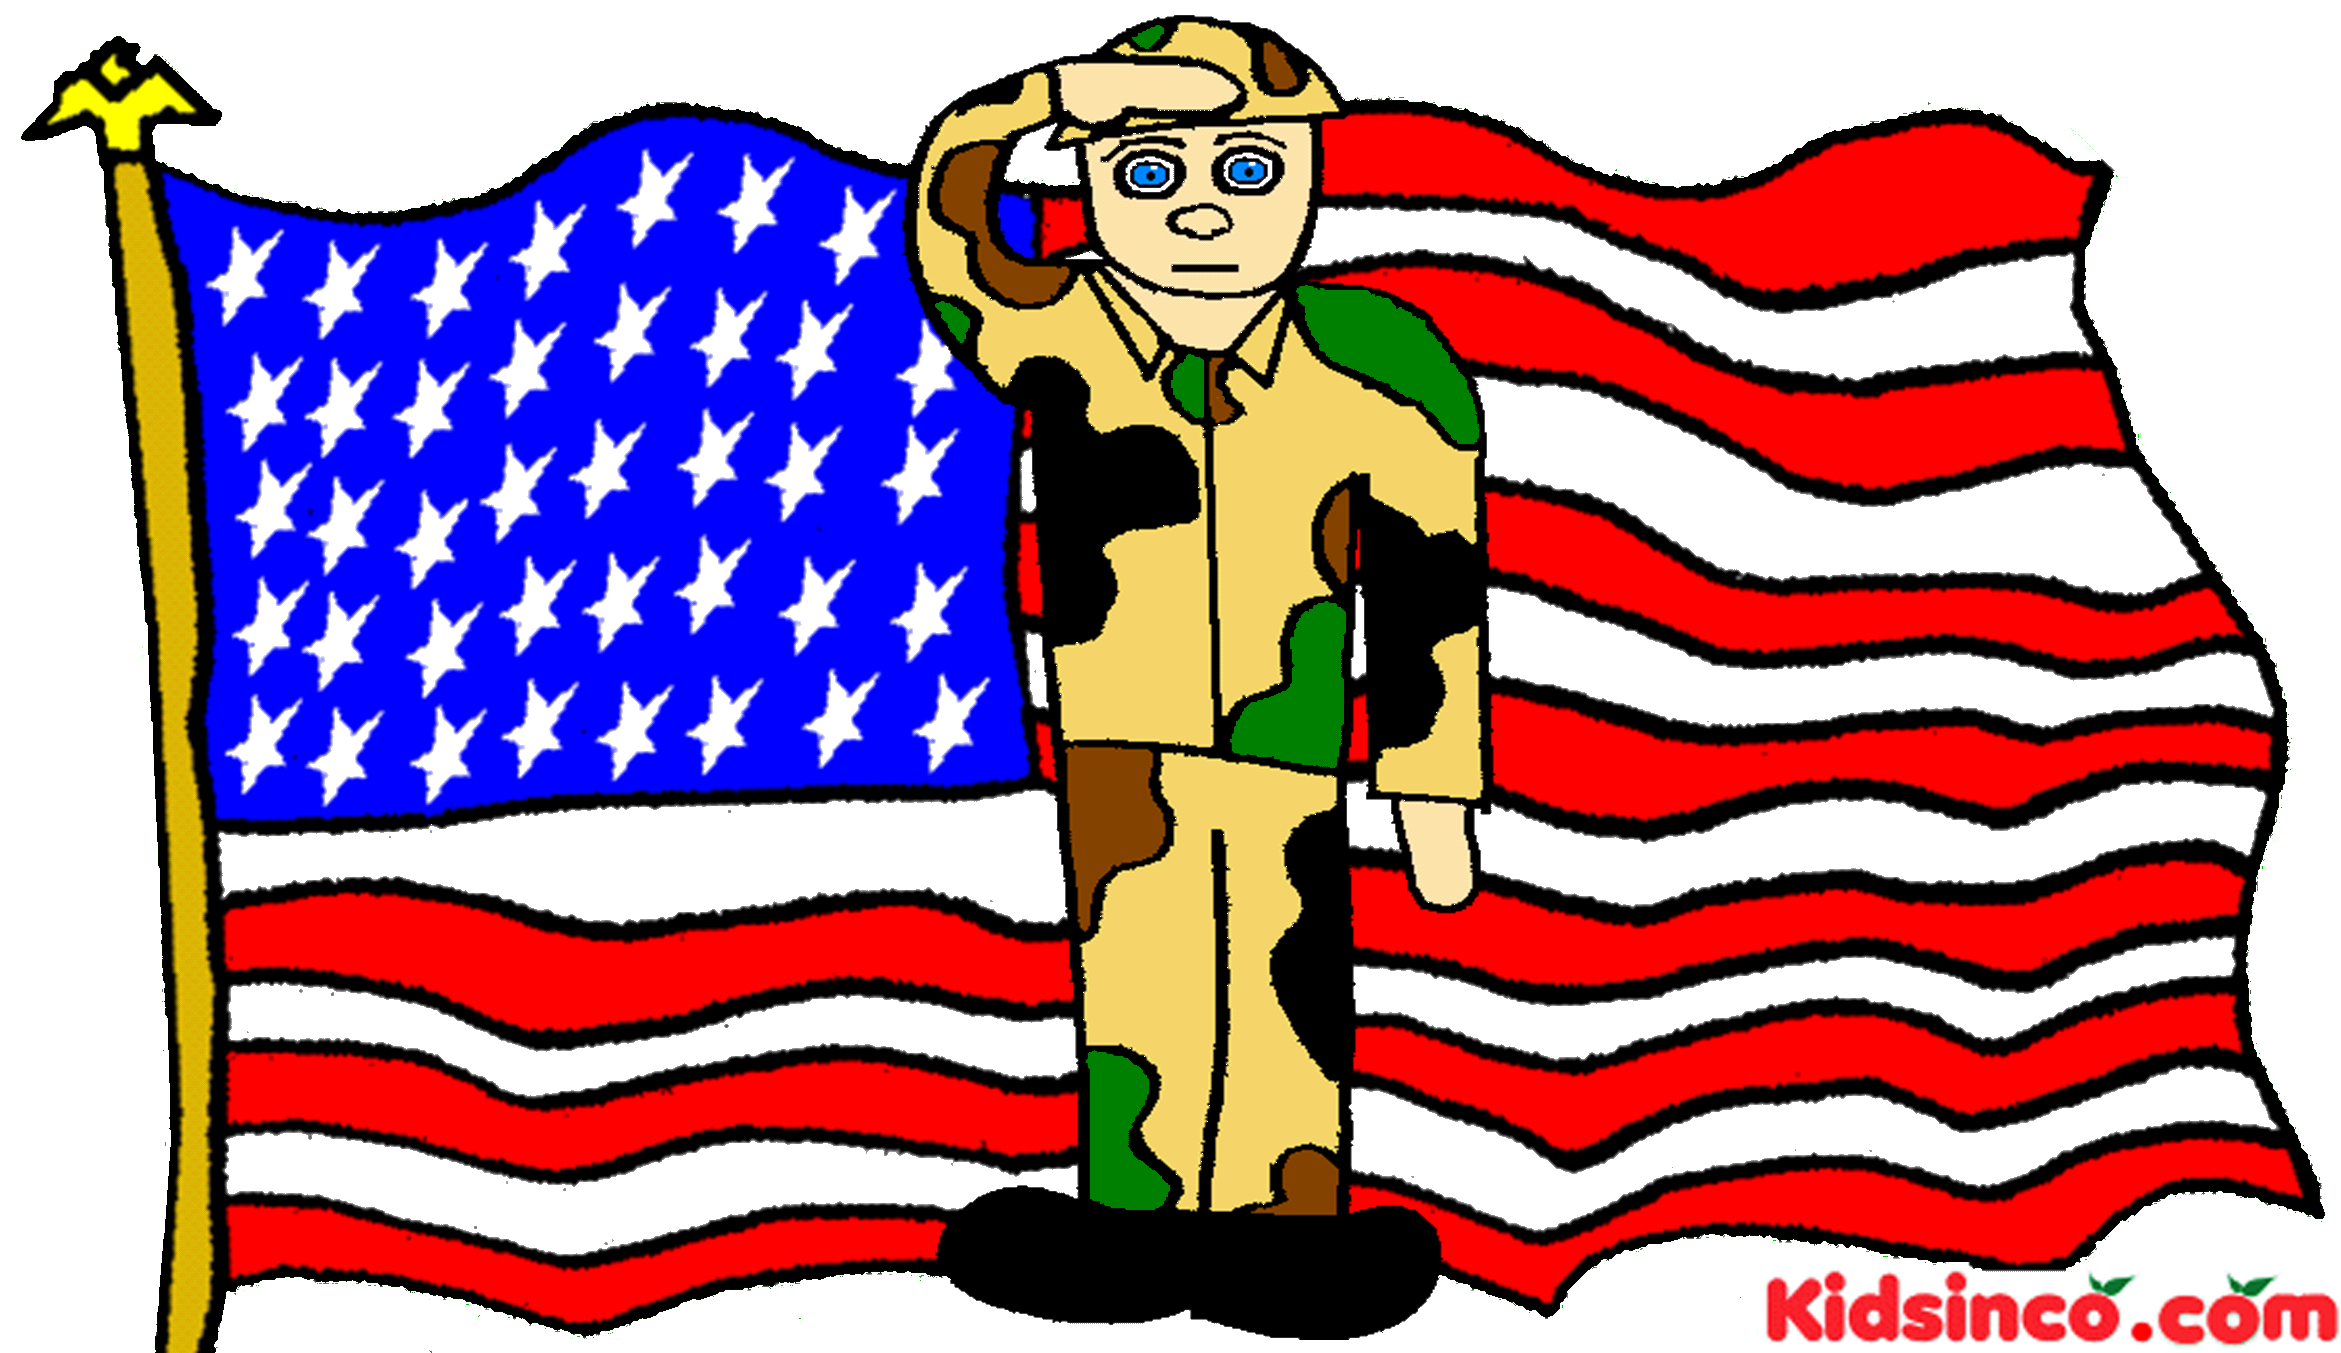 veterans day clip art for 5th graders clipart panda veterans clip art boarder veterans clip art boarder